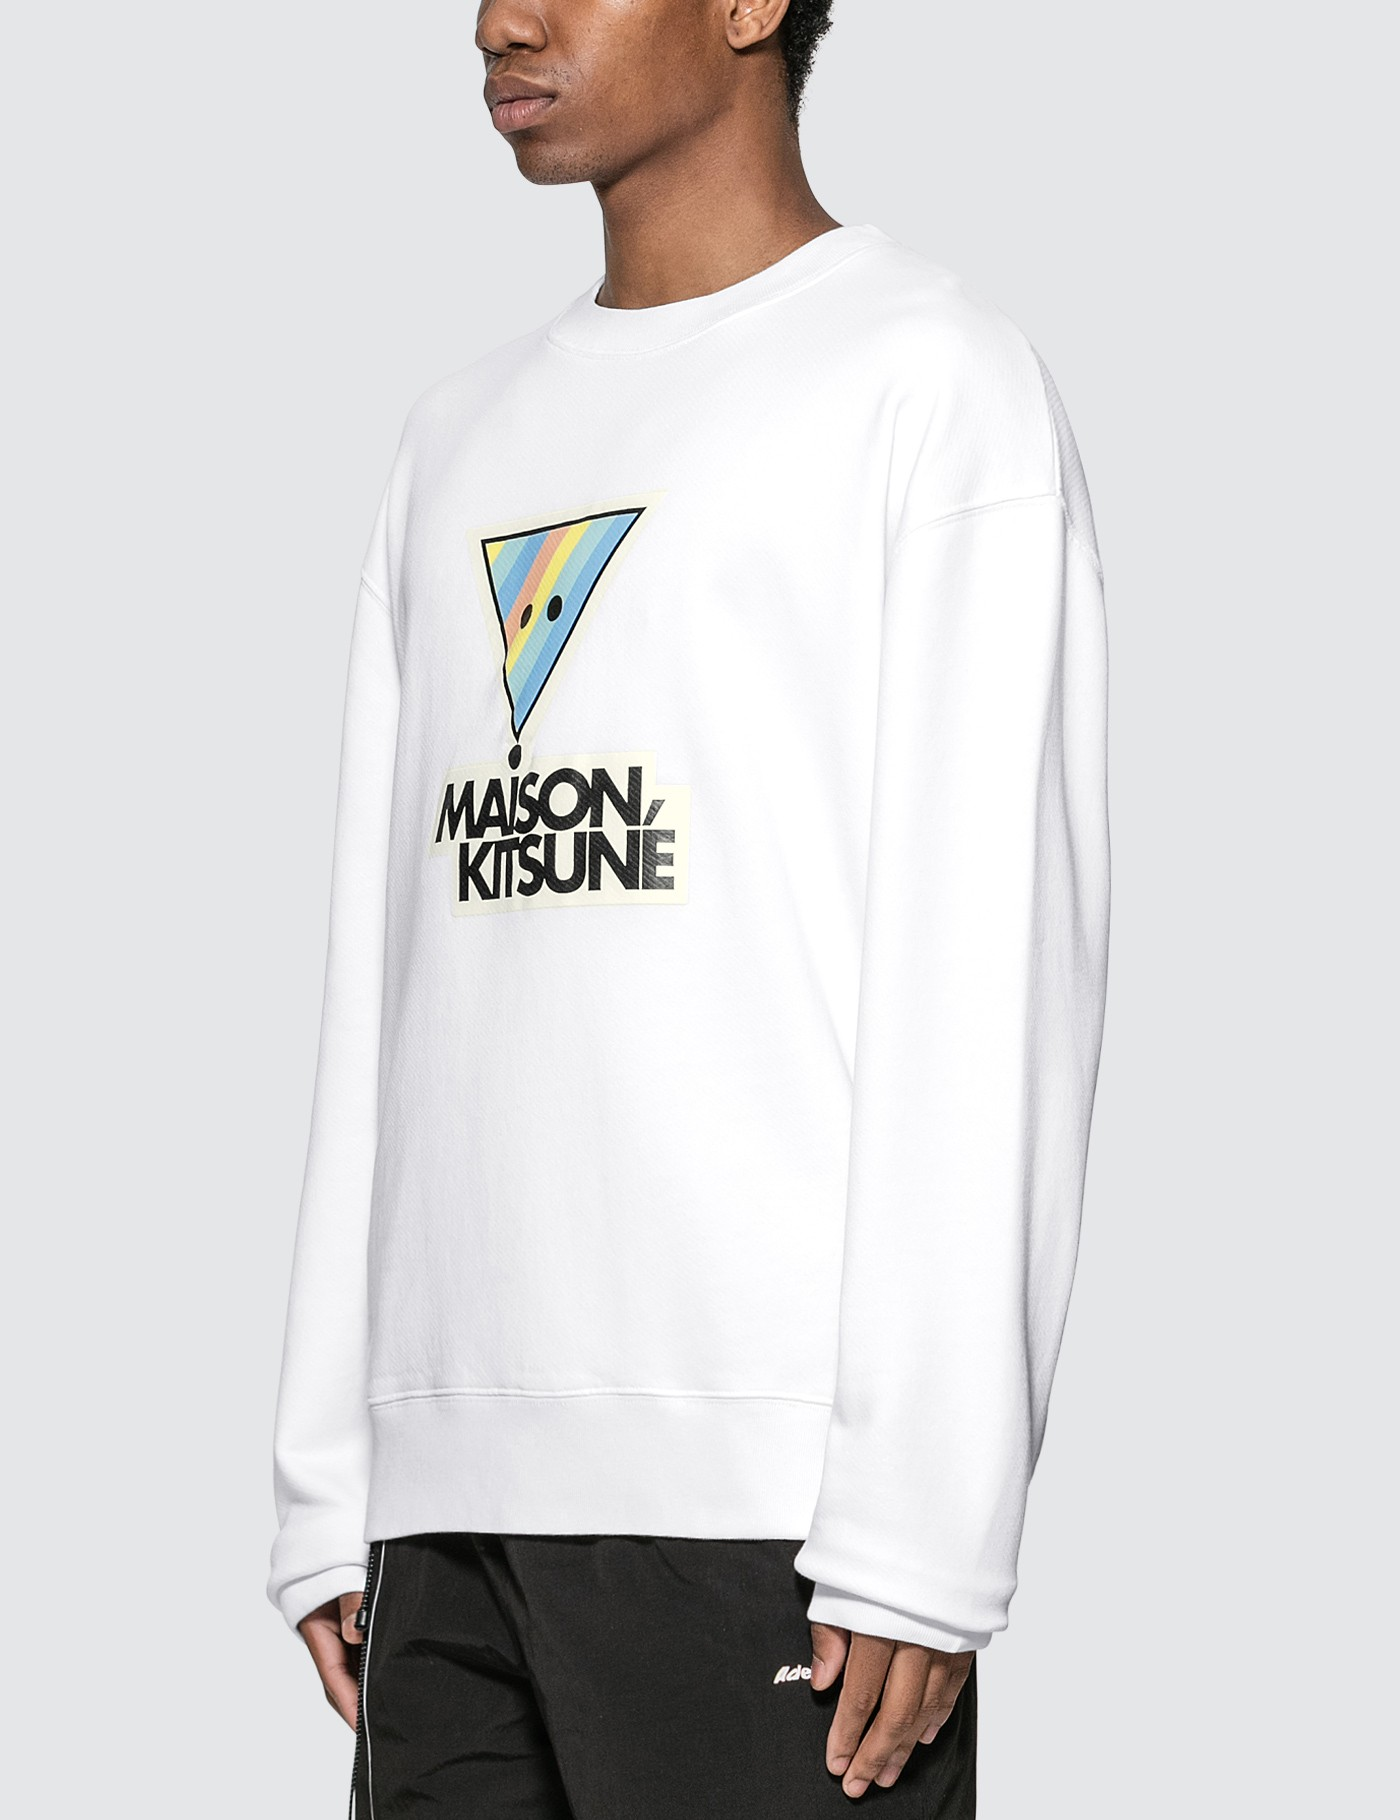 MAISON KITSUNE Rainbow Triangle Fox Print Sweatshirt